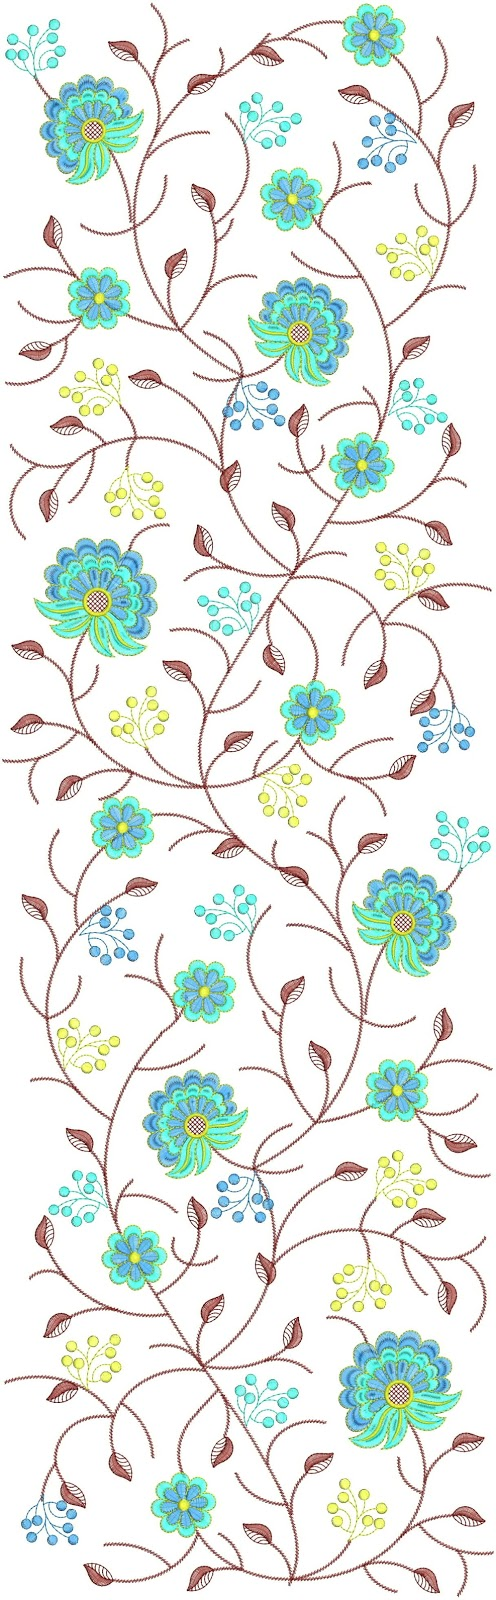 Western embroidery patterns western embroidery patterns photo4 bankloansurffo Gallery